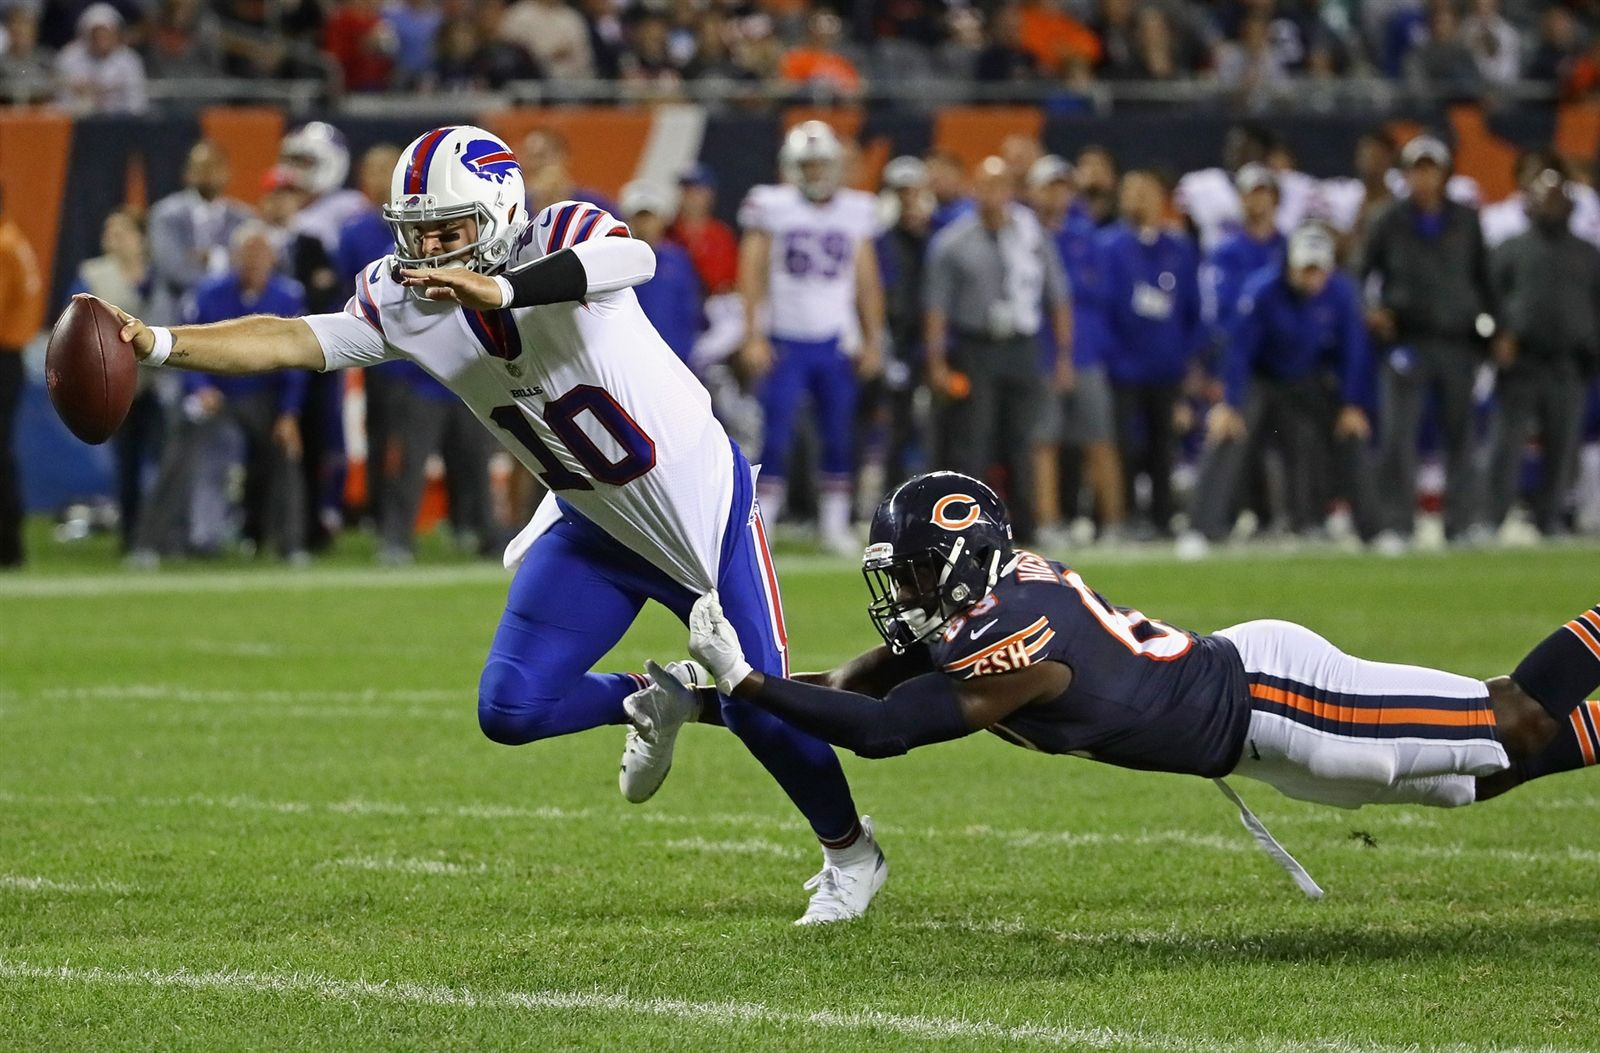 AJ McCarron of the Buffalo Bills breaks away from Ro'Derrick Hoskins of the Chicago Bears to score a touchdown.